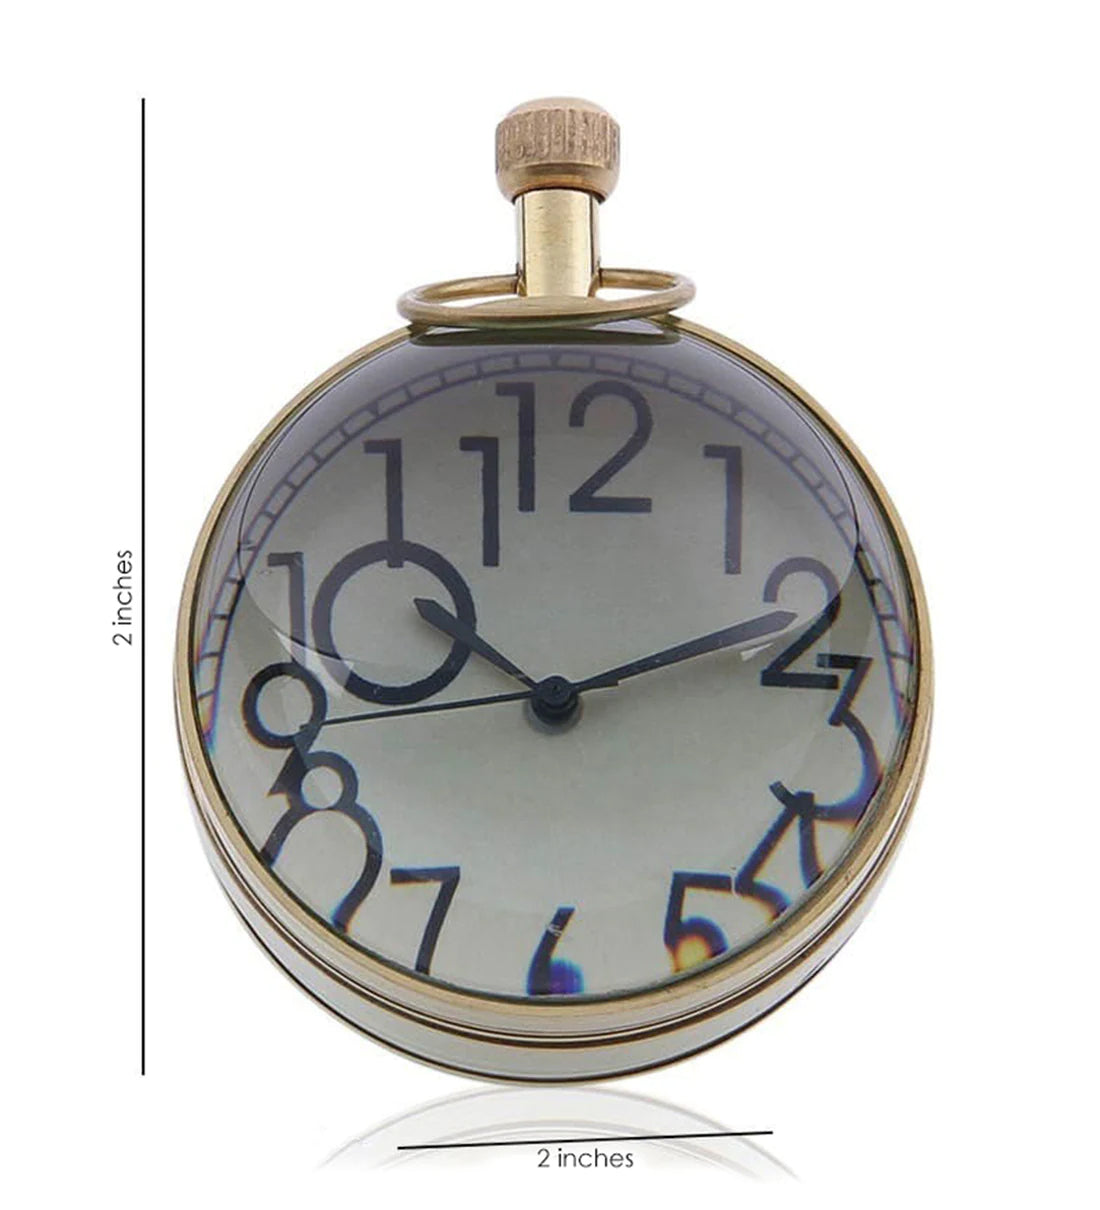 Brass Round Table Clock 2 inch